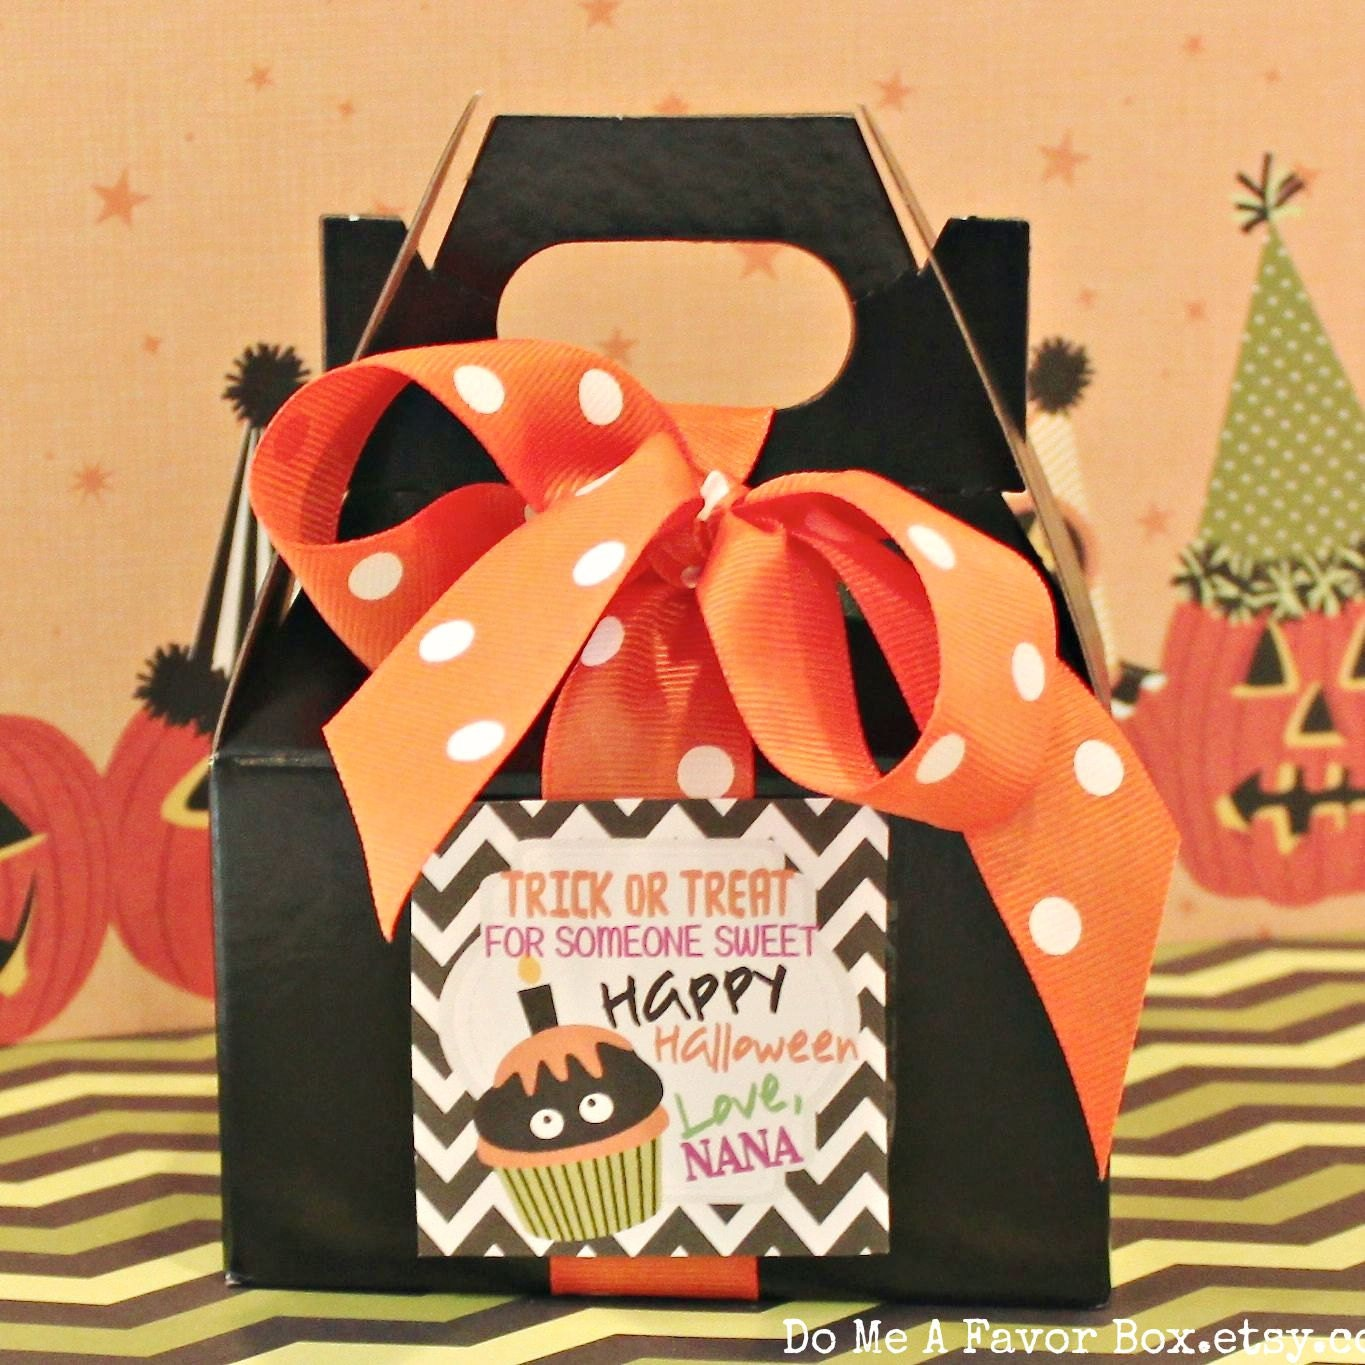 Mini Gable Box 12 Halloween Party Favor Mini Gable Boxes